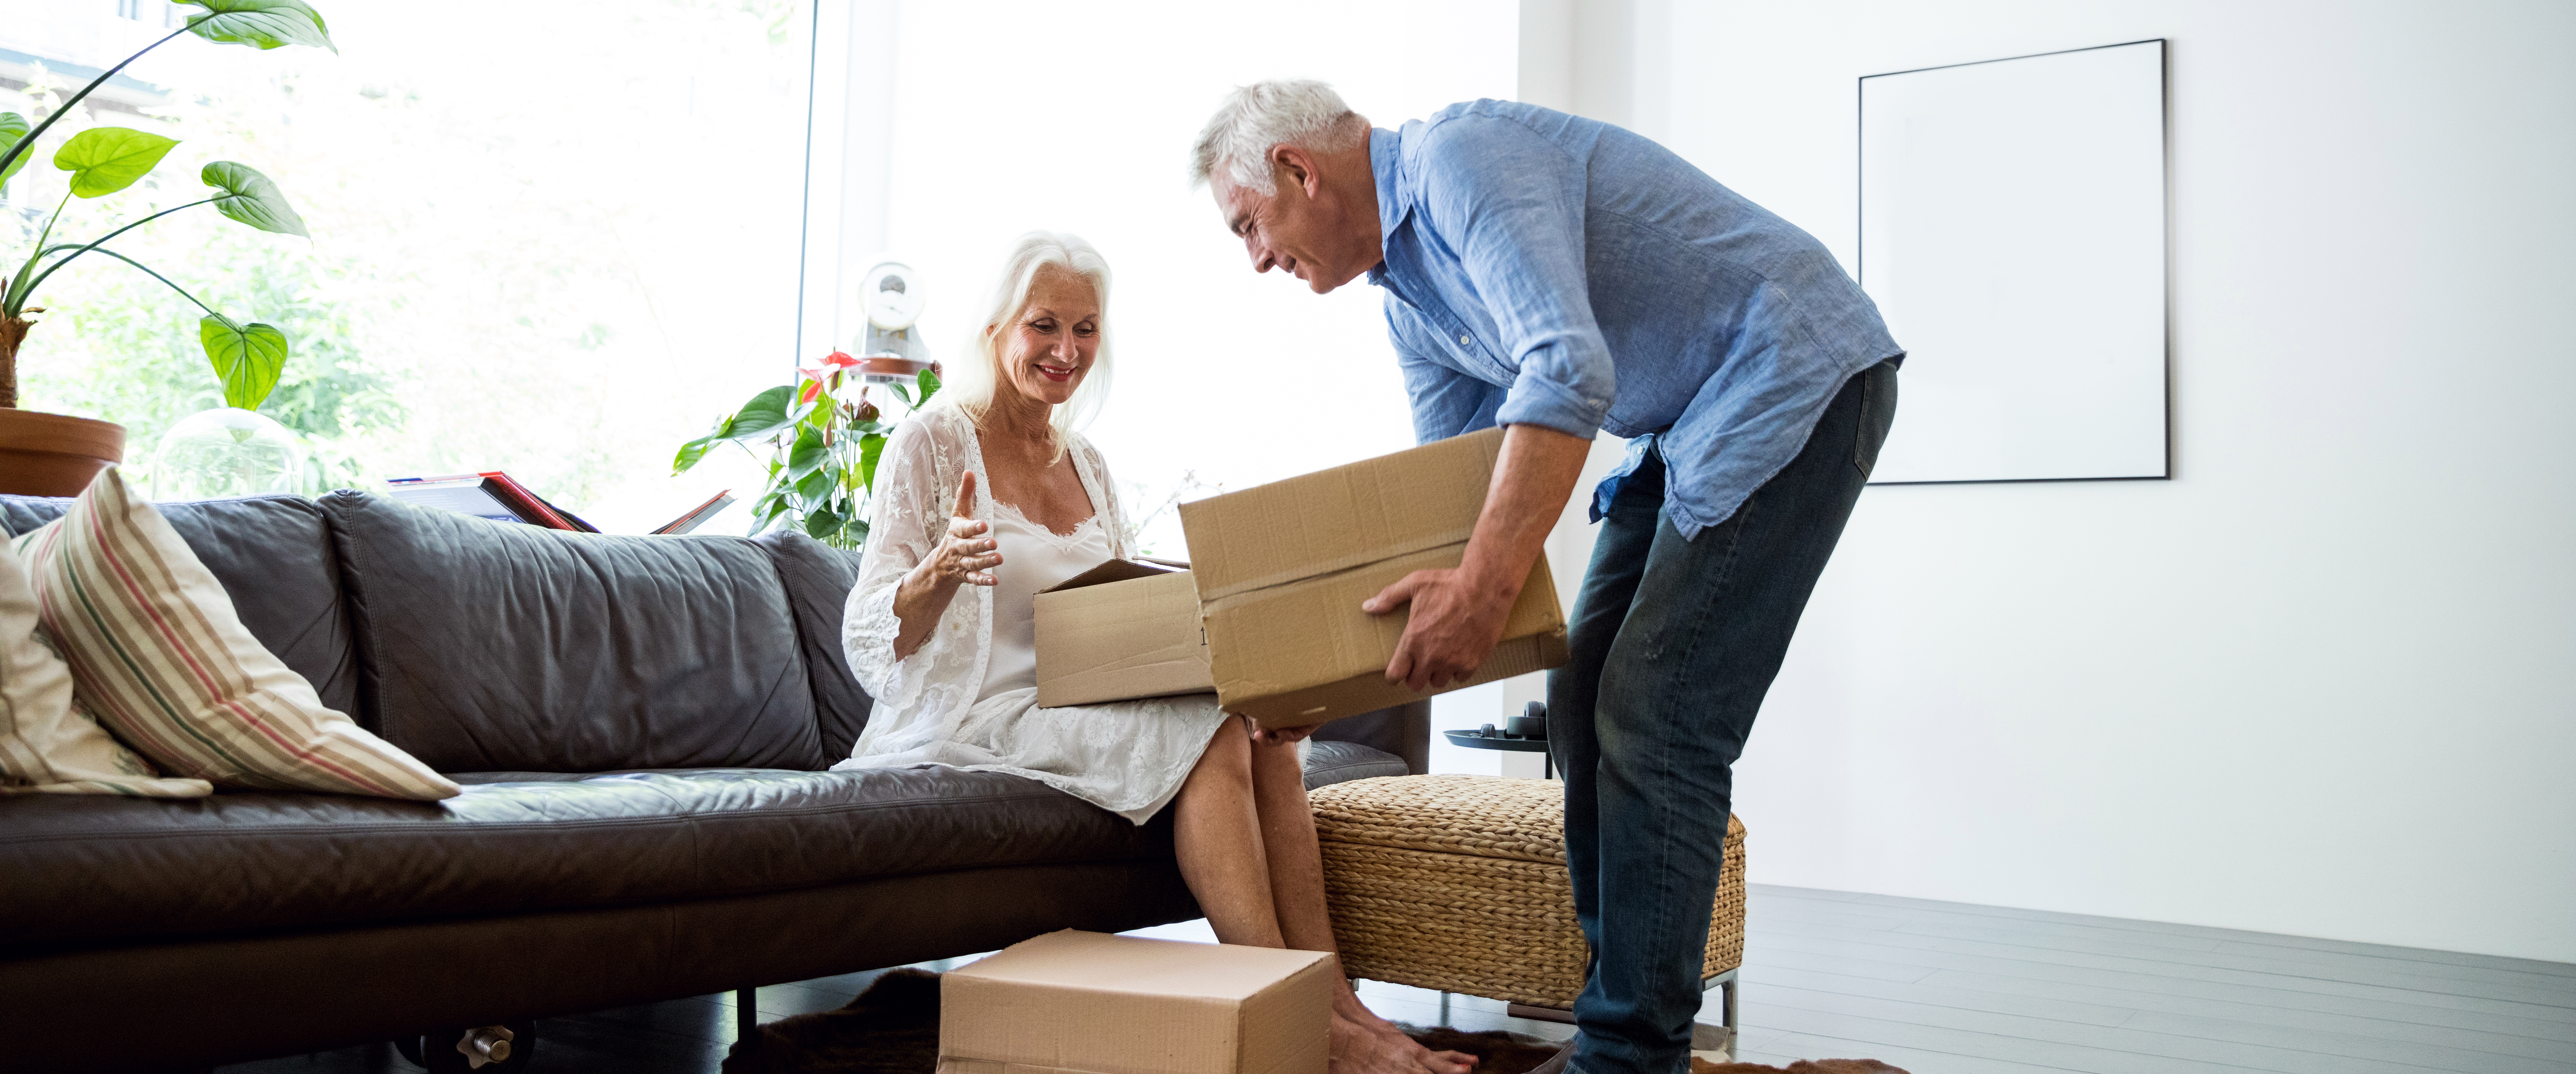 Couple going through boxes of their stuff together